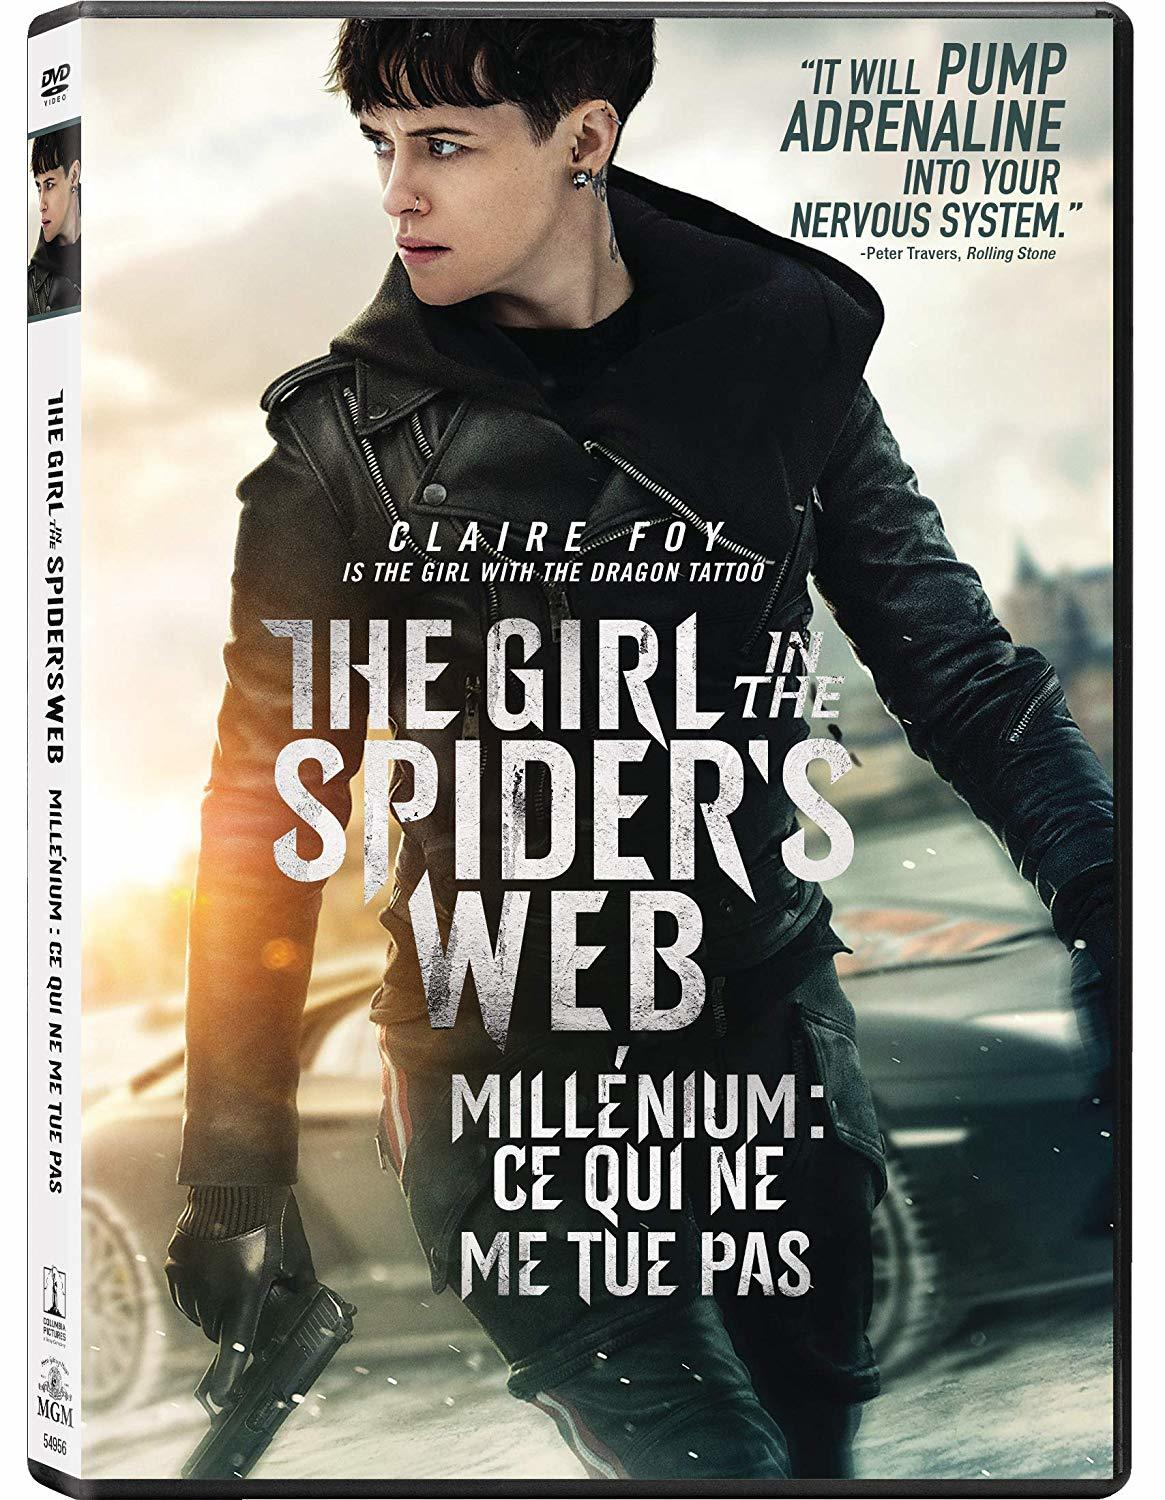 Millenium : Ce Qui Ne Me Tue Pas : millenium, Spider's, (DVD), (Sony), Entertainment, Source